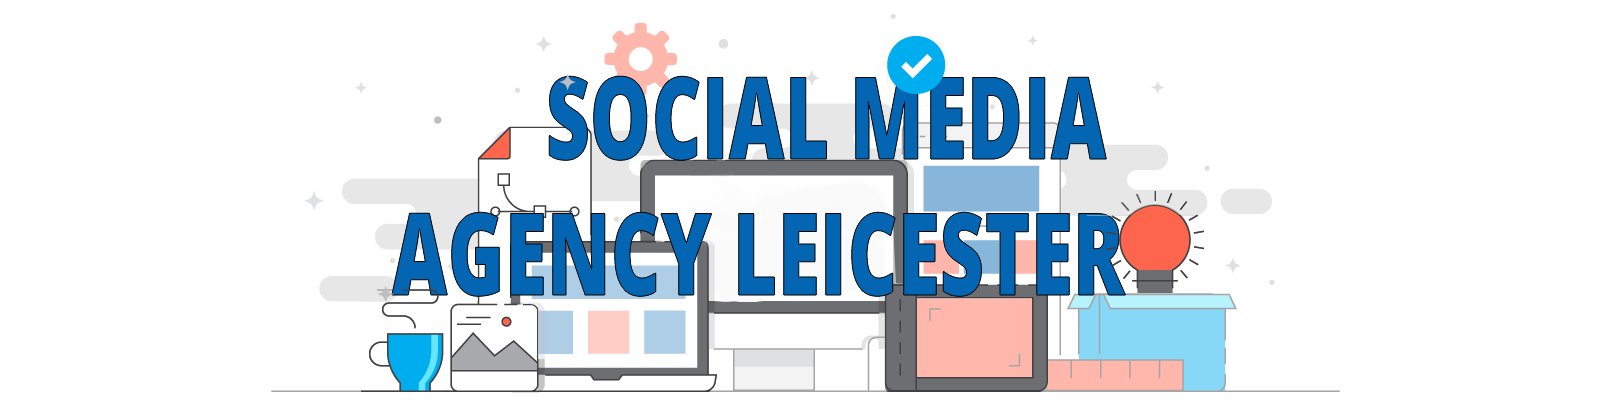 seek social social media agency leicester header with transparent background